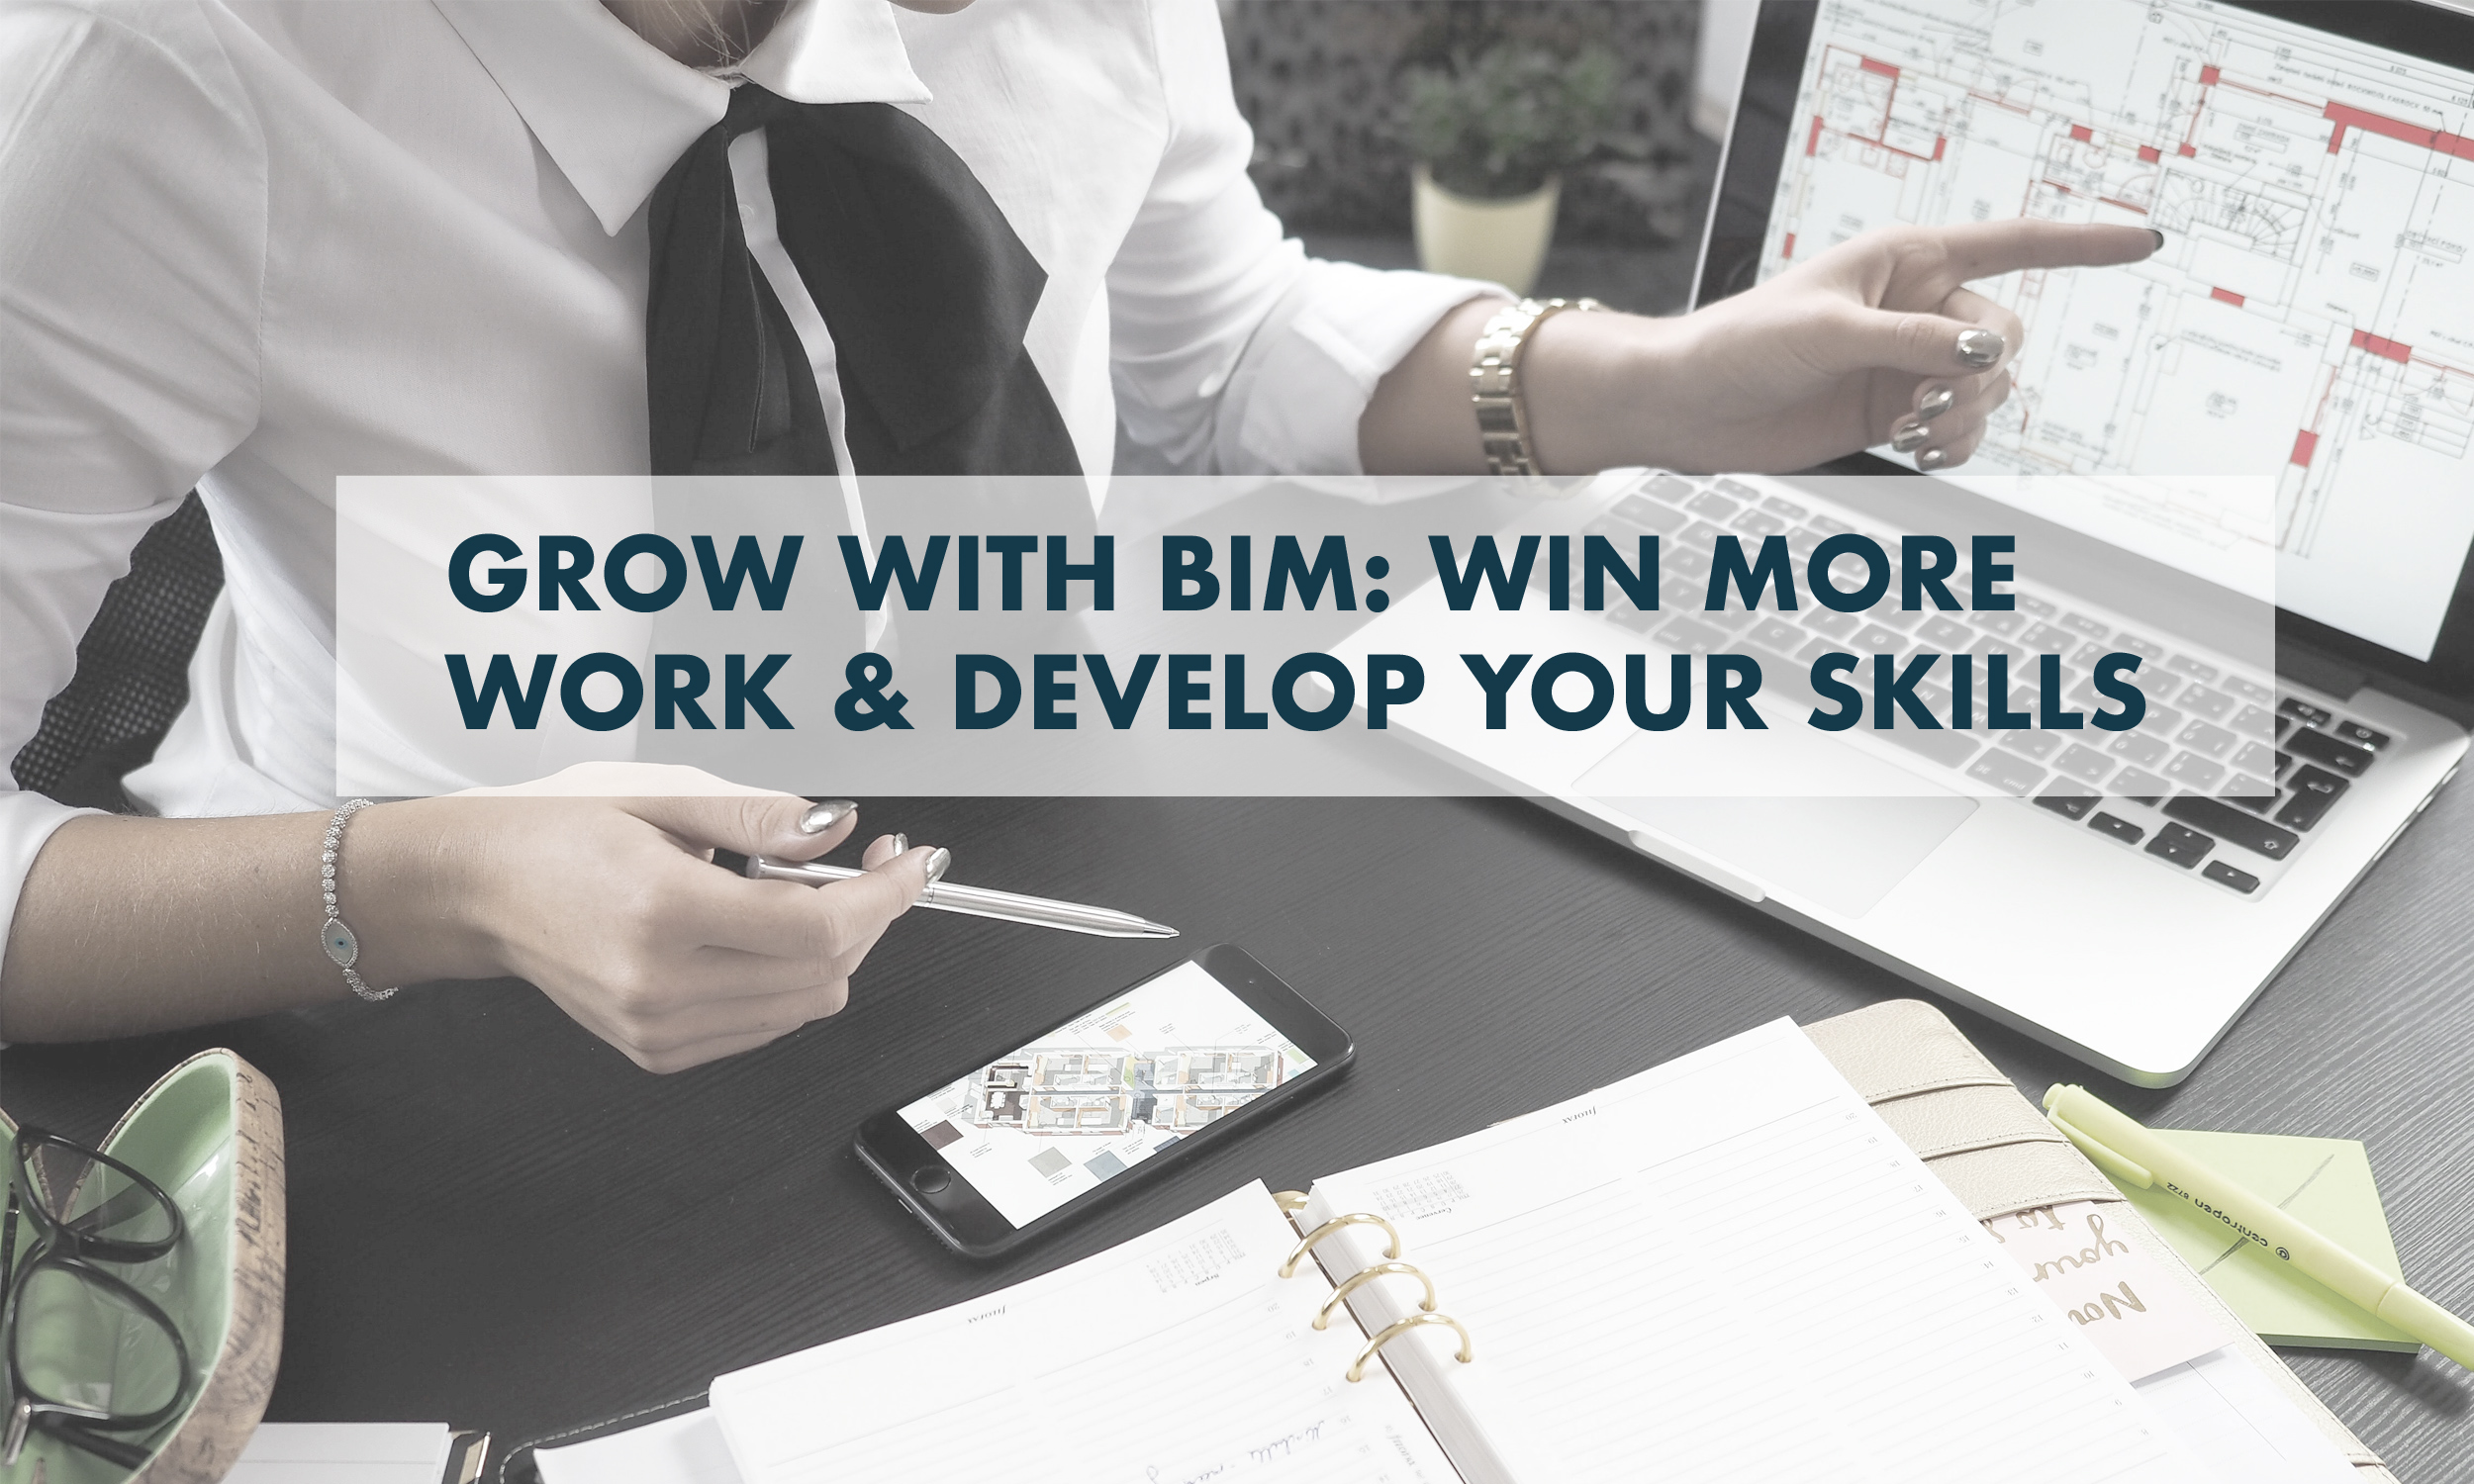 Educate your clients about your company's BIM capabilities. Use BIM as a marketing tool and negotiate new projects